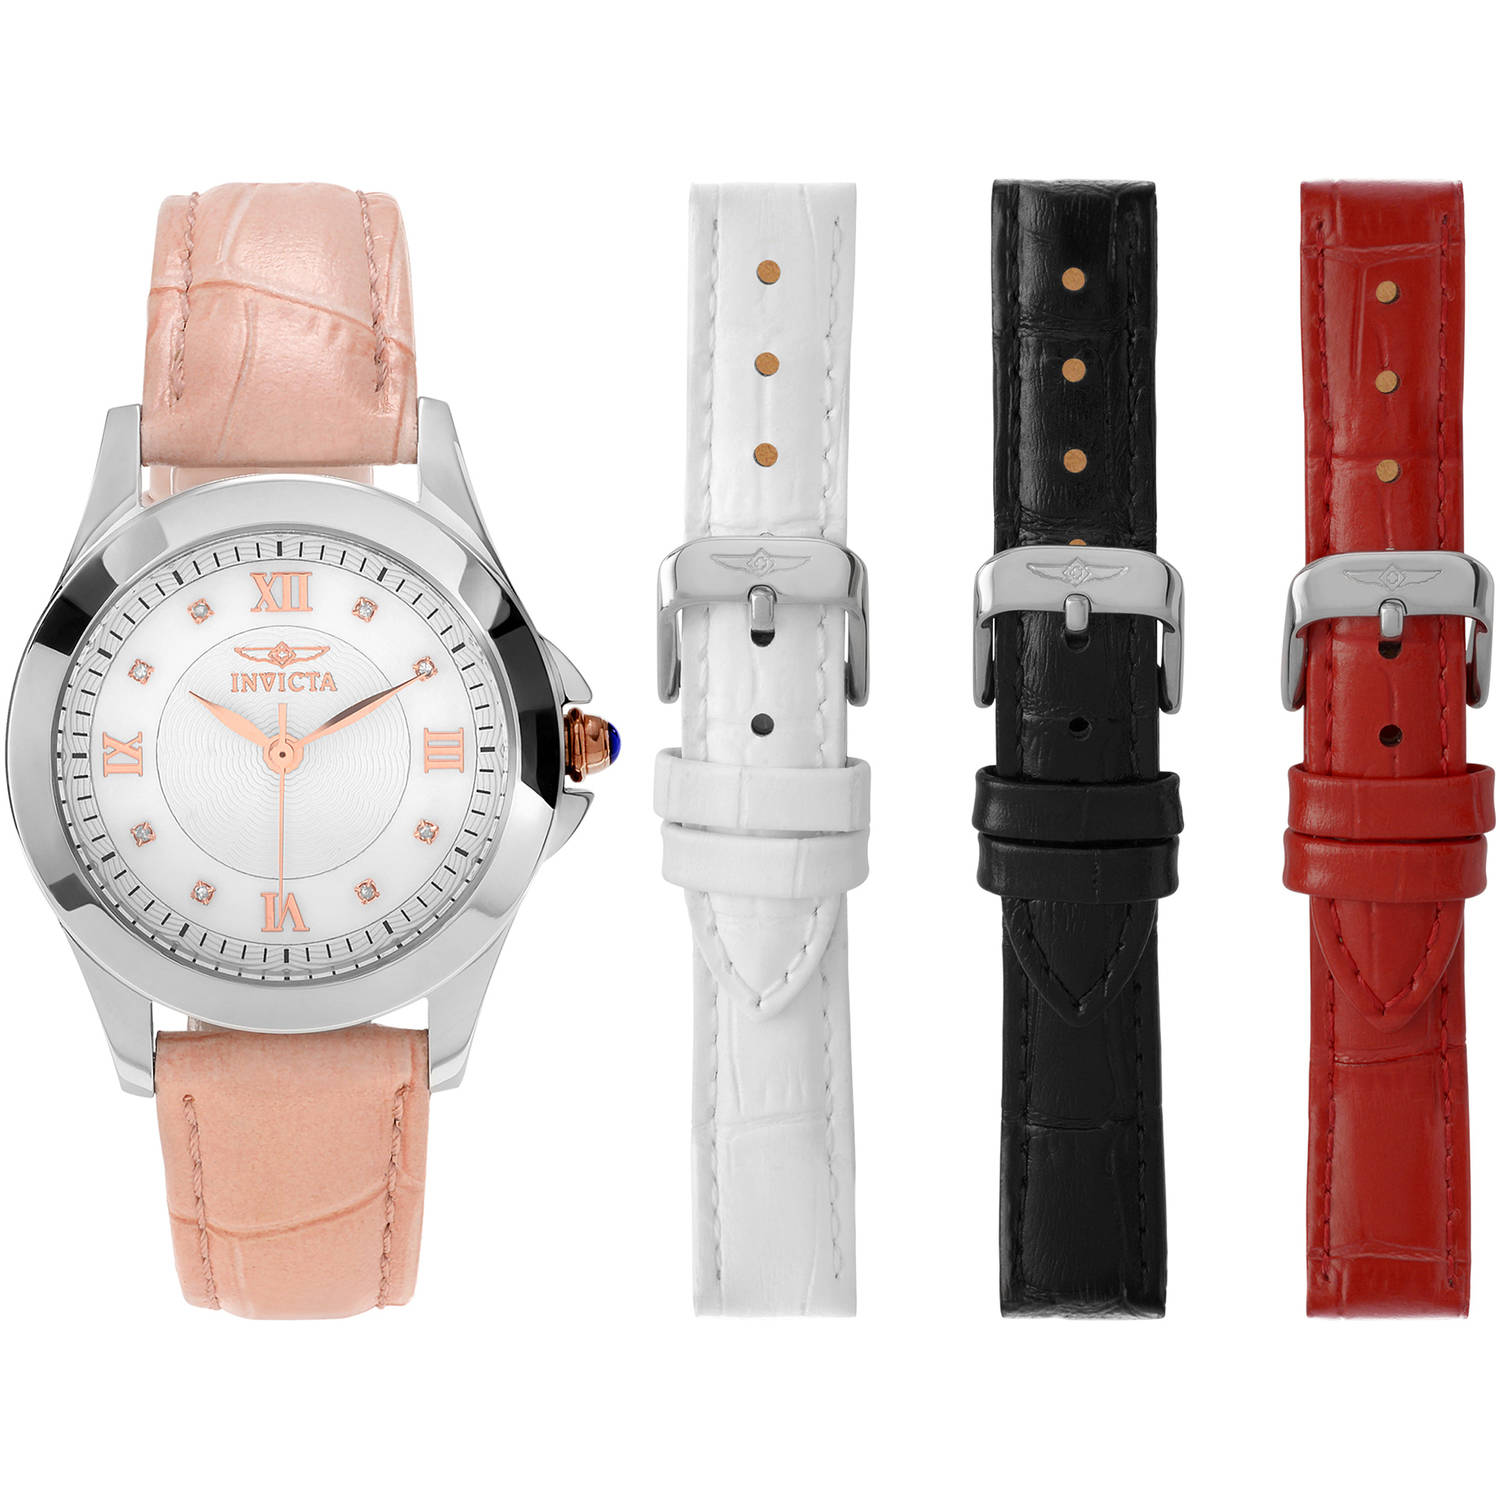 Invicta Women's Diamond 12544 Angel Leather Strap Dress Fashion Watch Set, 4 Straps, Multicolor